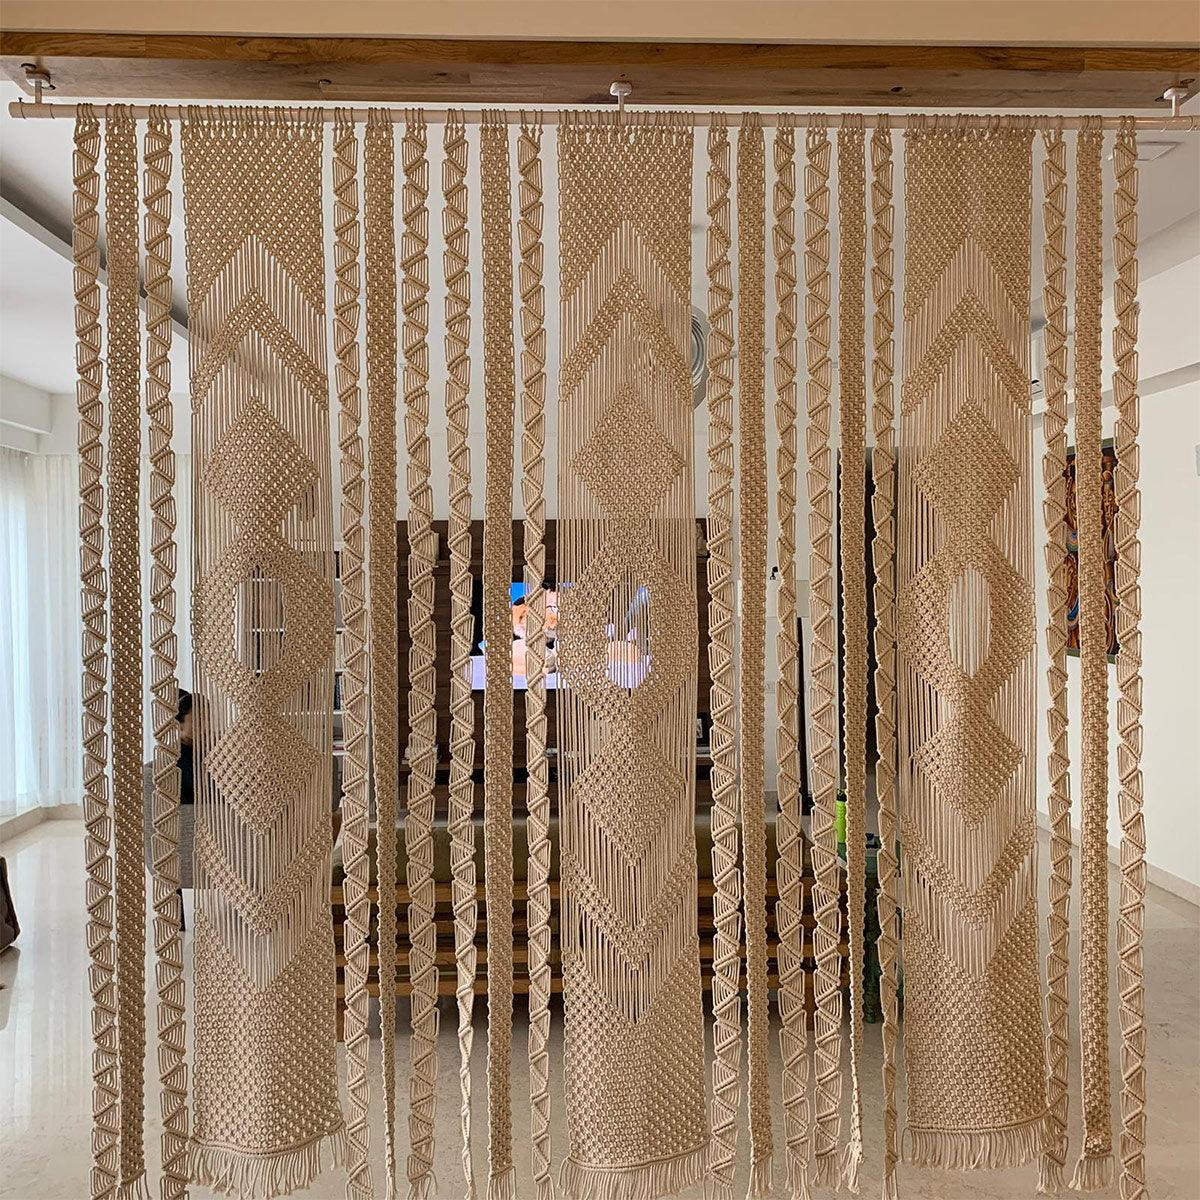 (s) Regal Handwoven Recycled Macrame Cotton Screen Divider